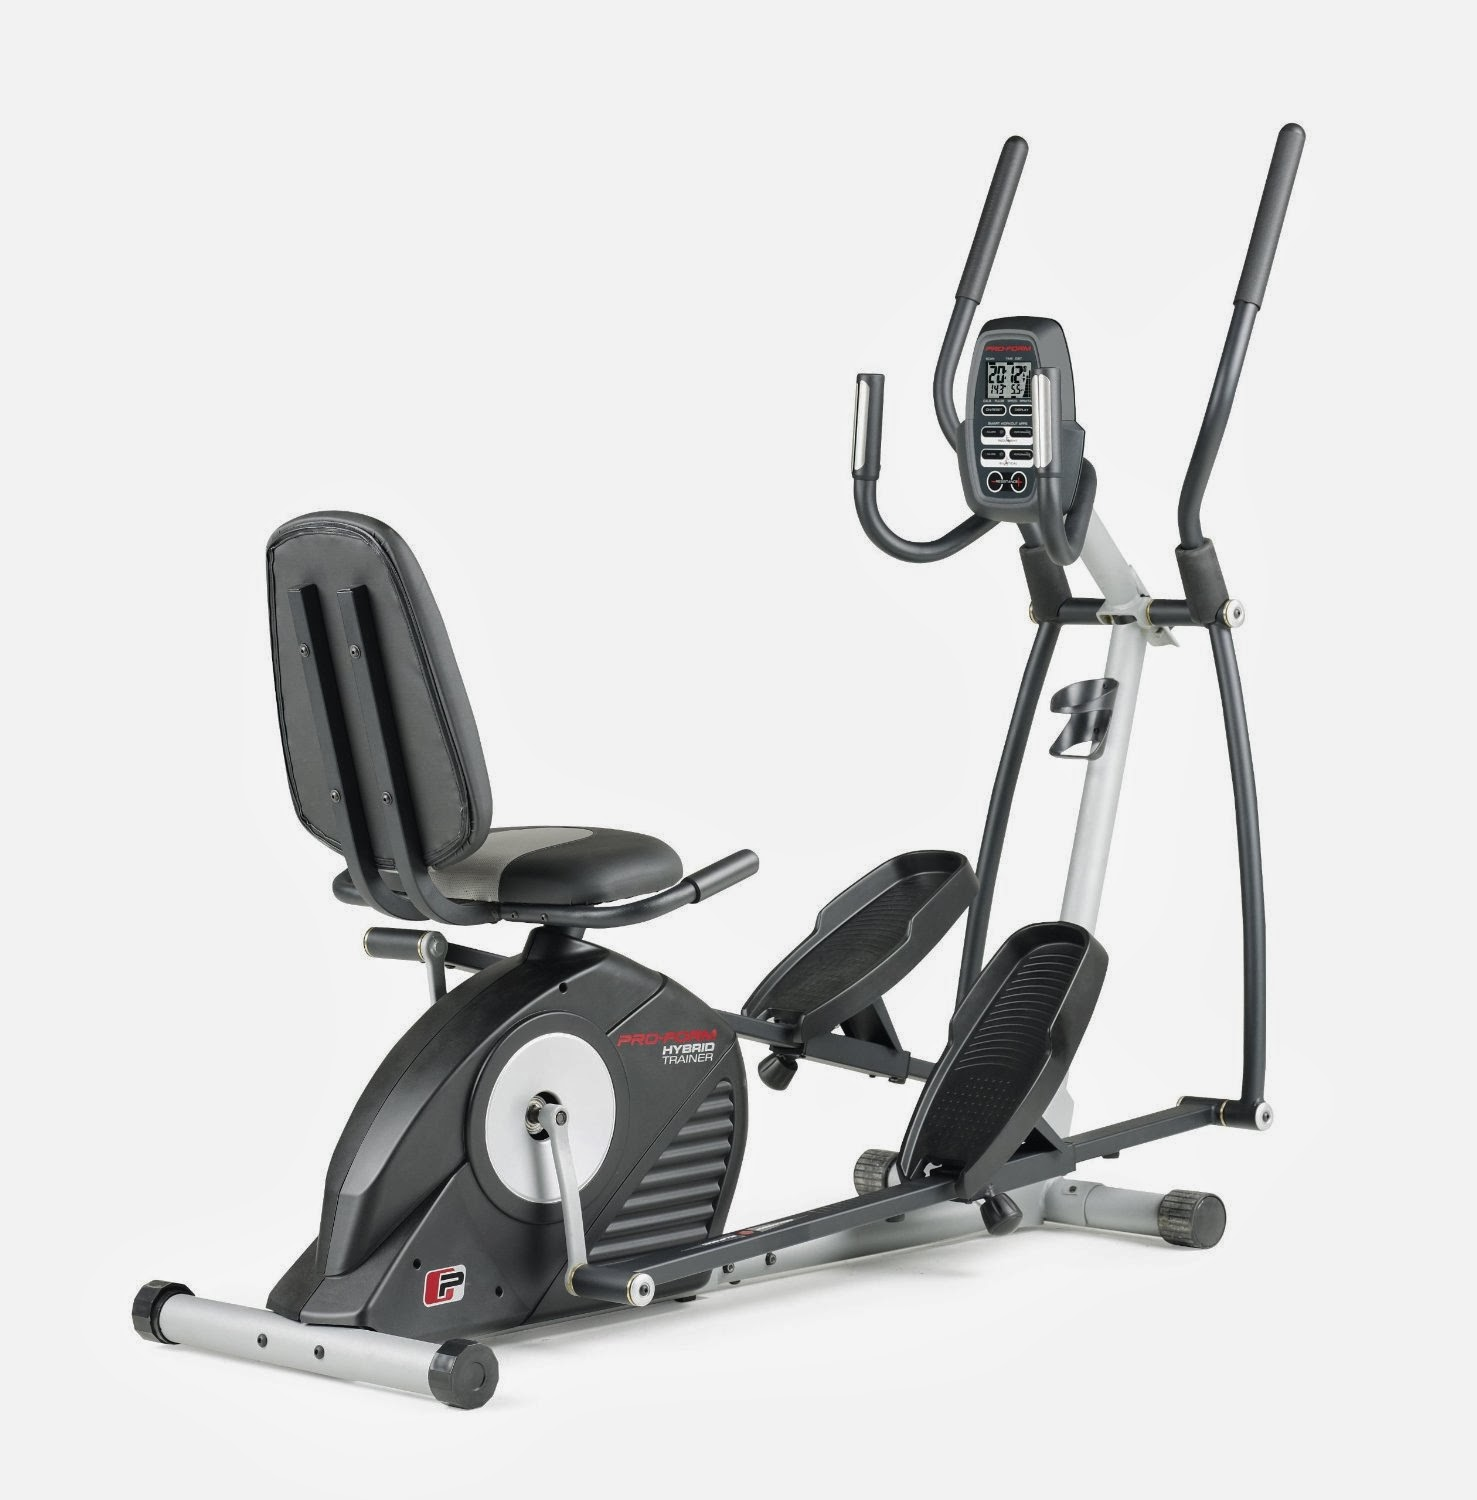 Knowing Further About Proform Elliptical